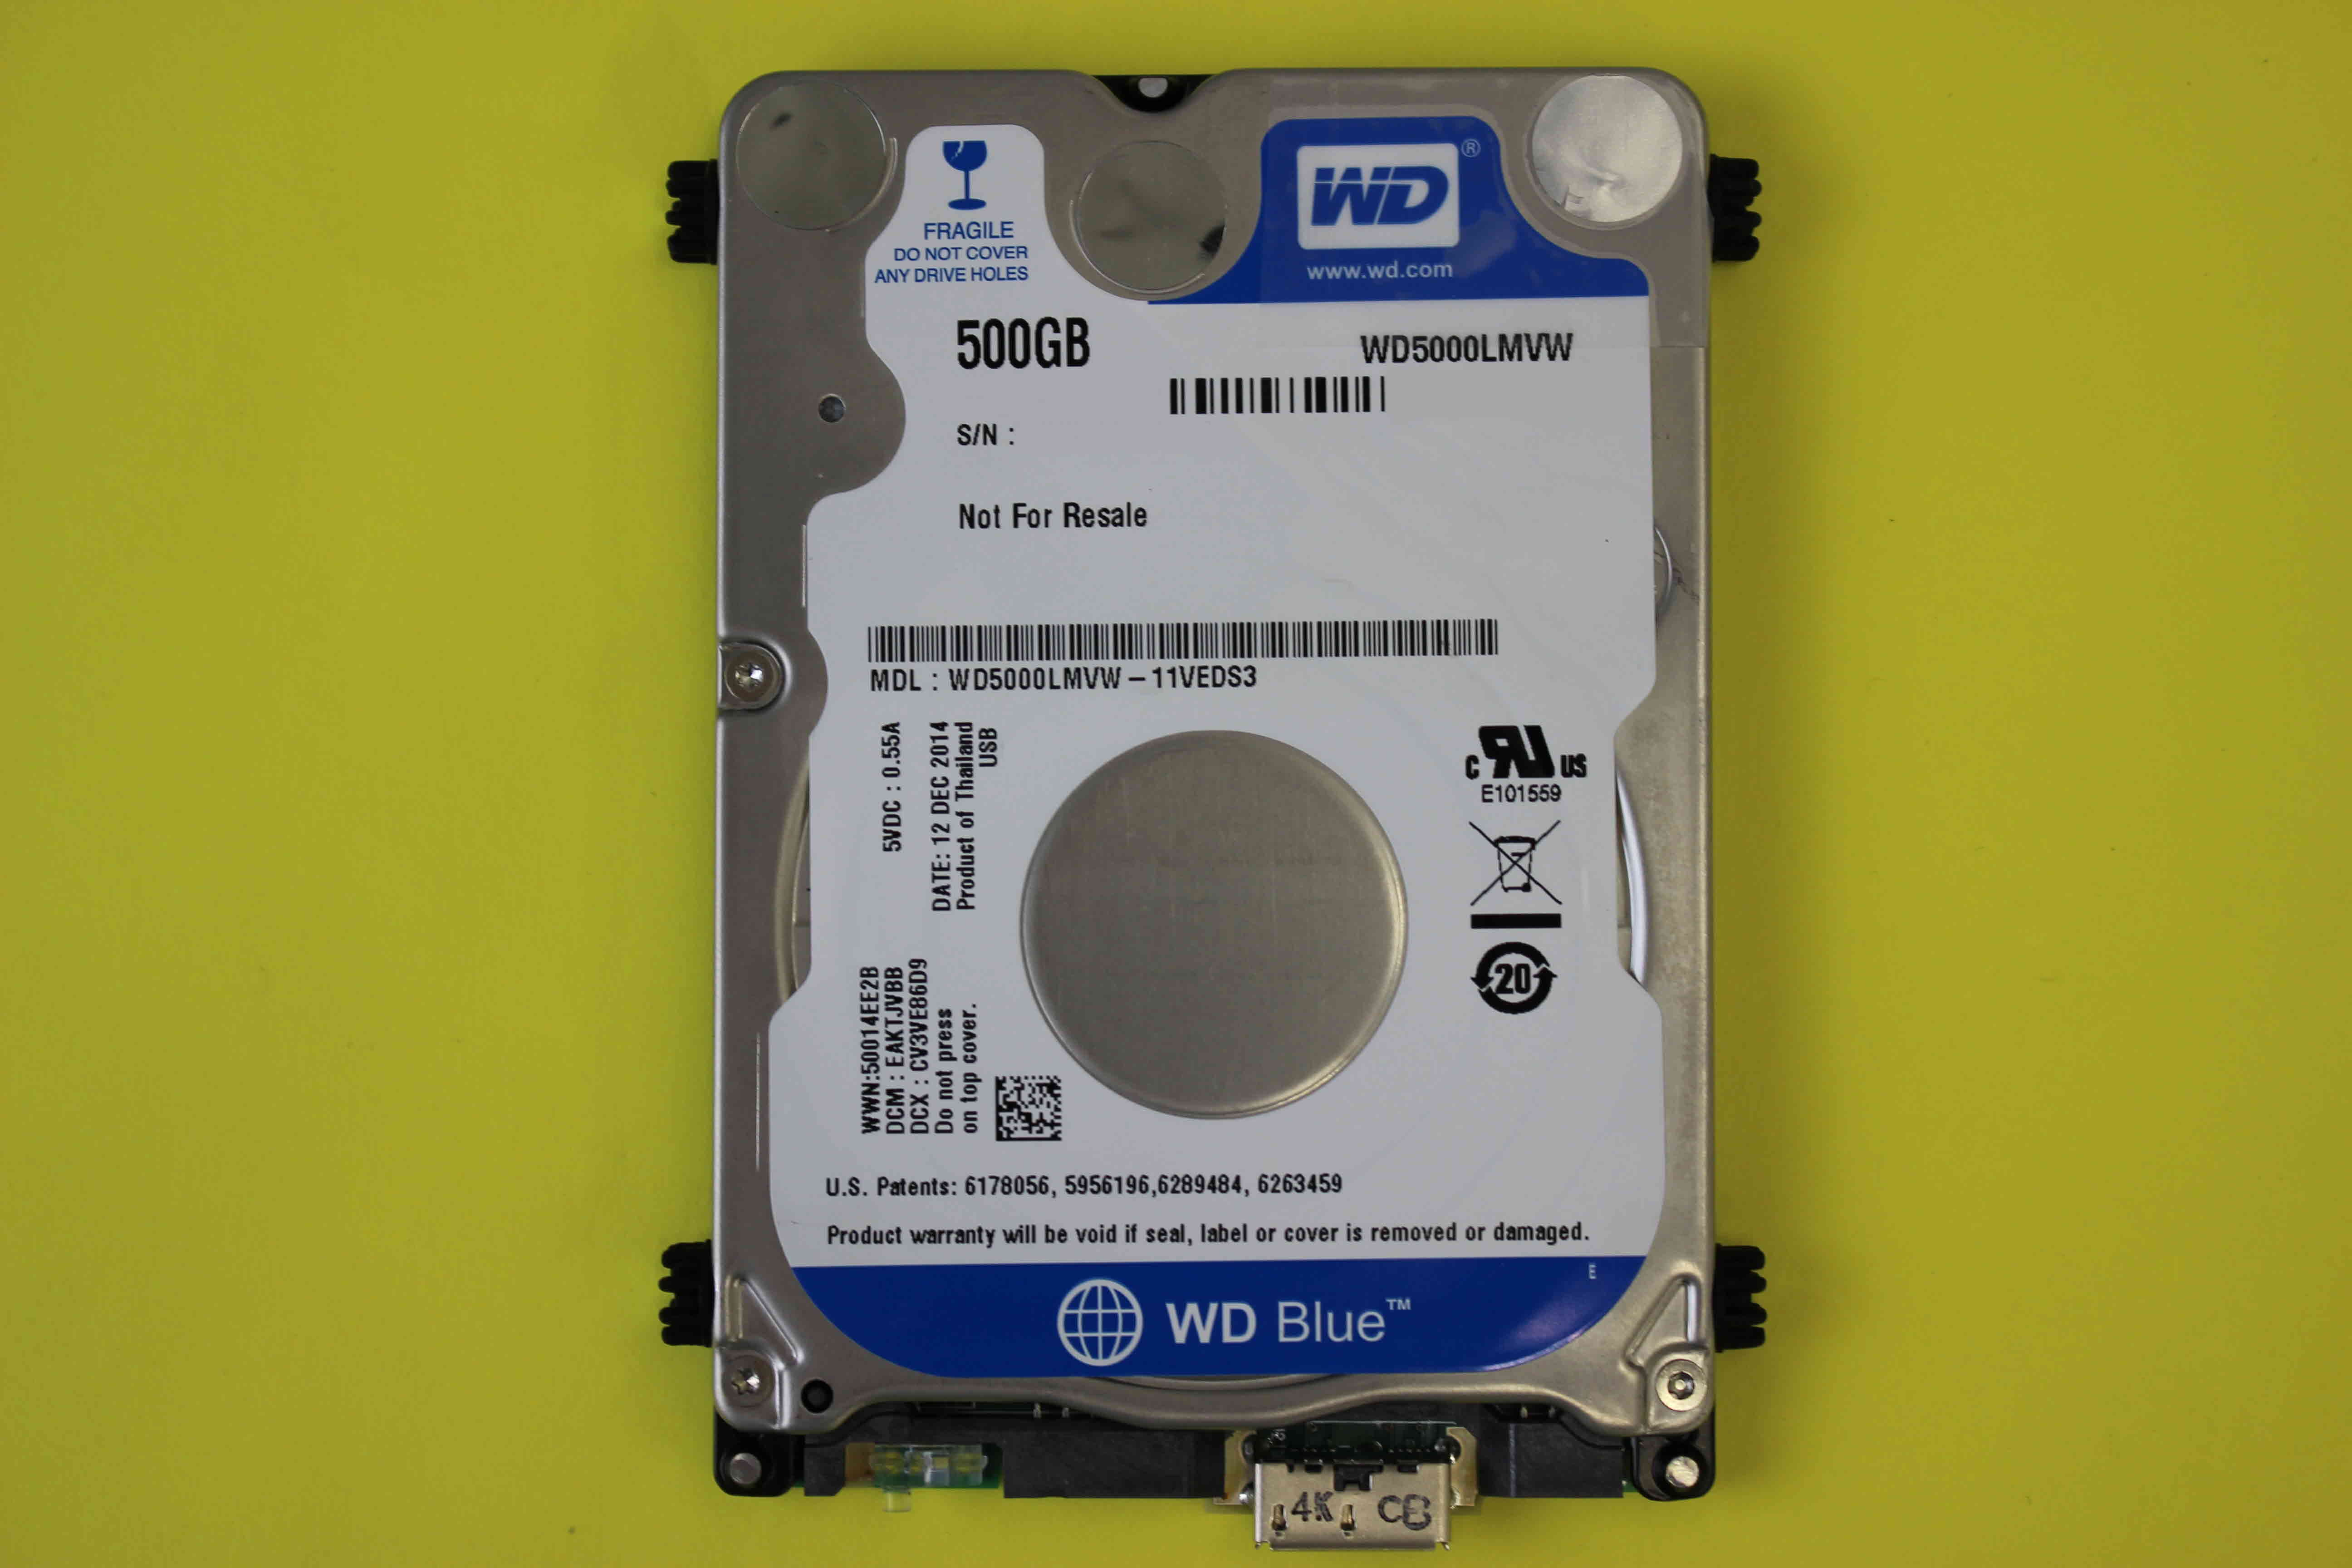 wd5000lmvw-11veds3-recovery